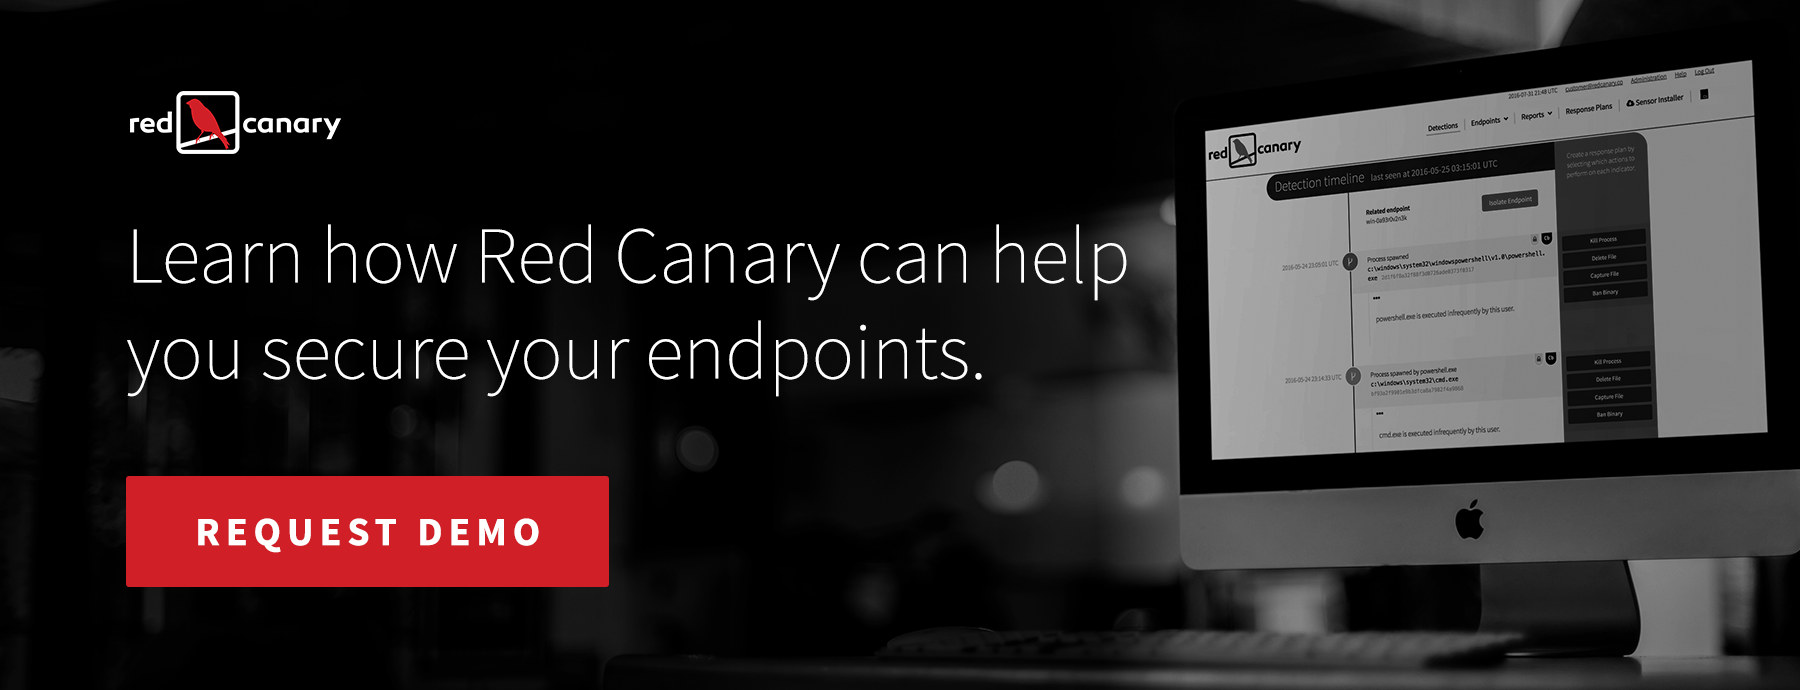 Request a demo with Red Canary